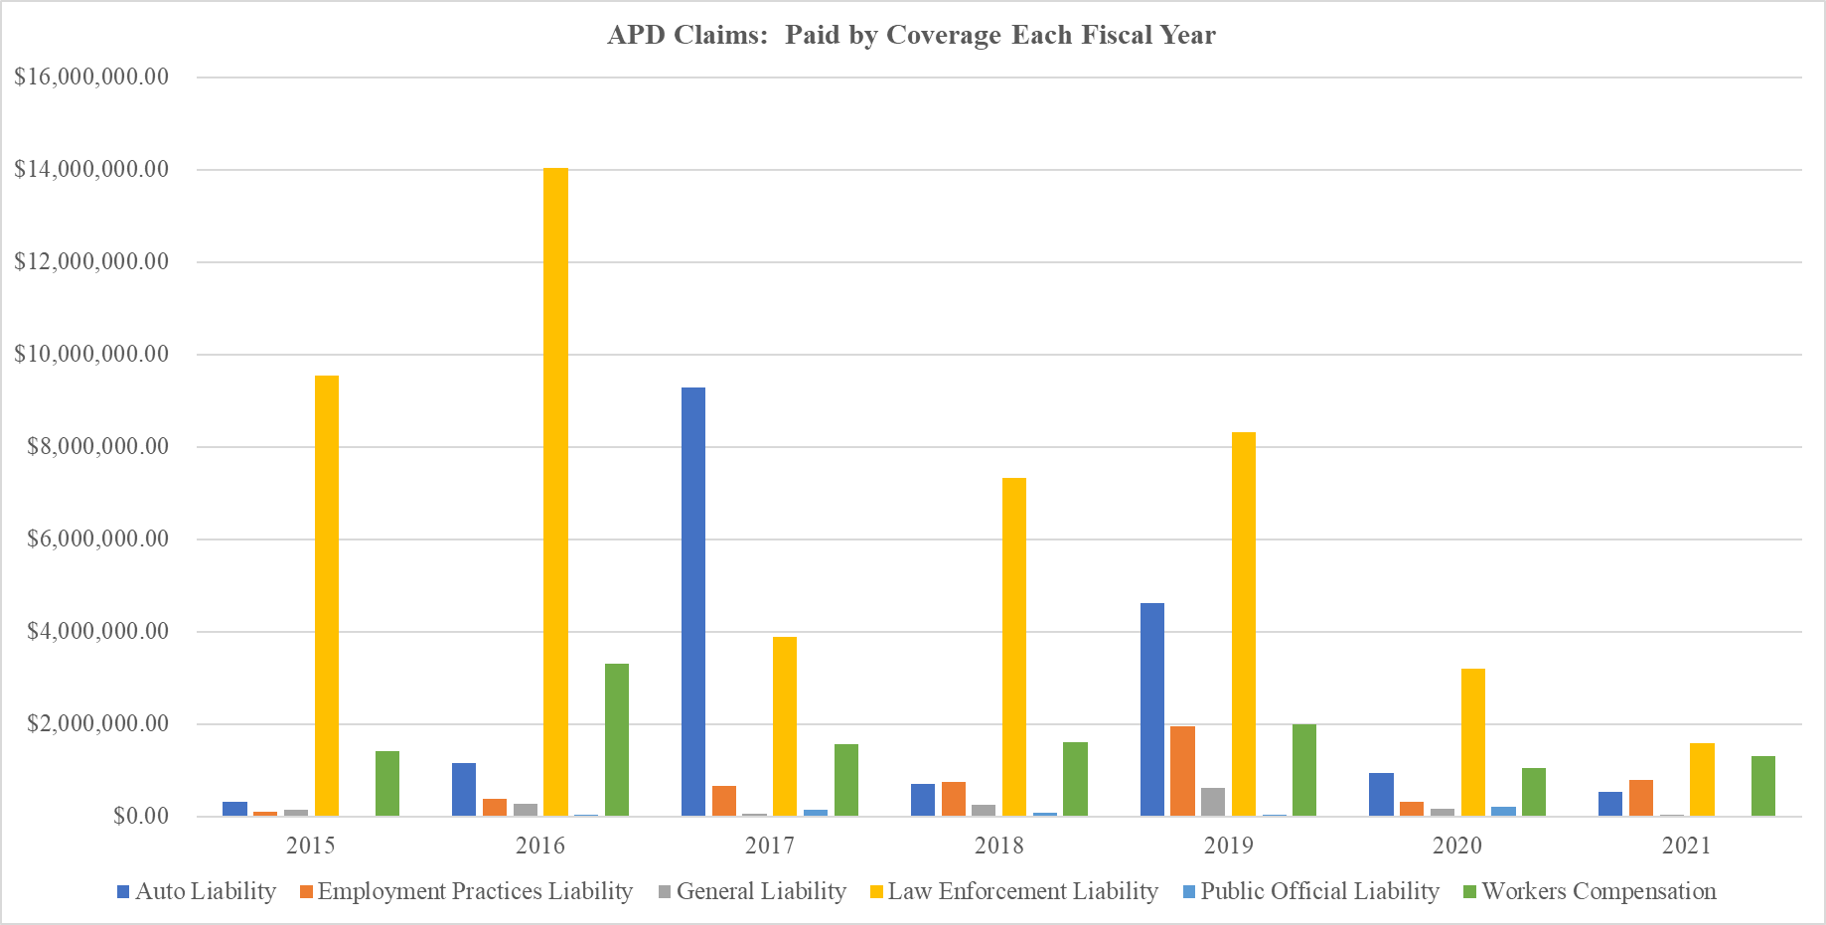 APD Claims Amount Paid by Coverage Each Year